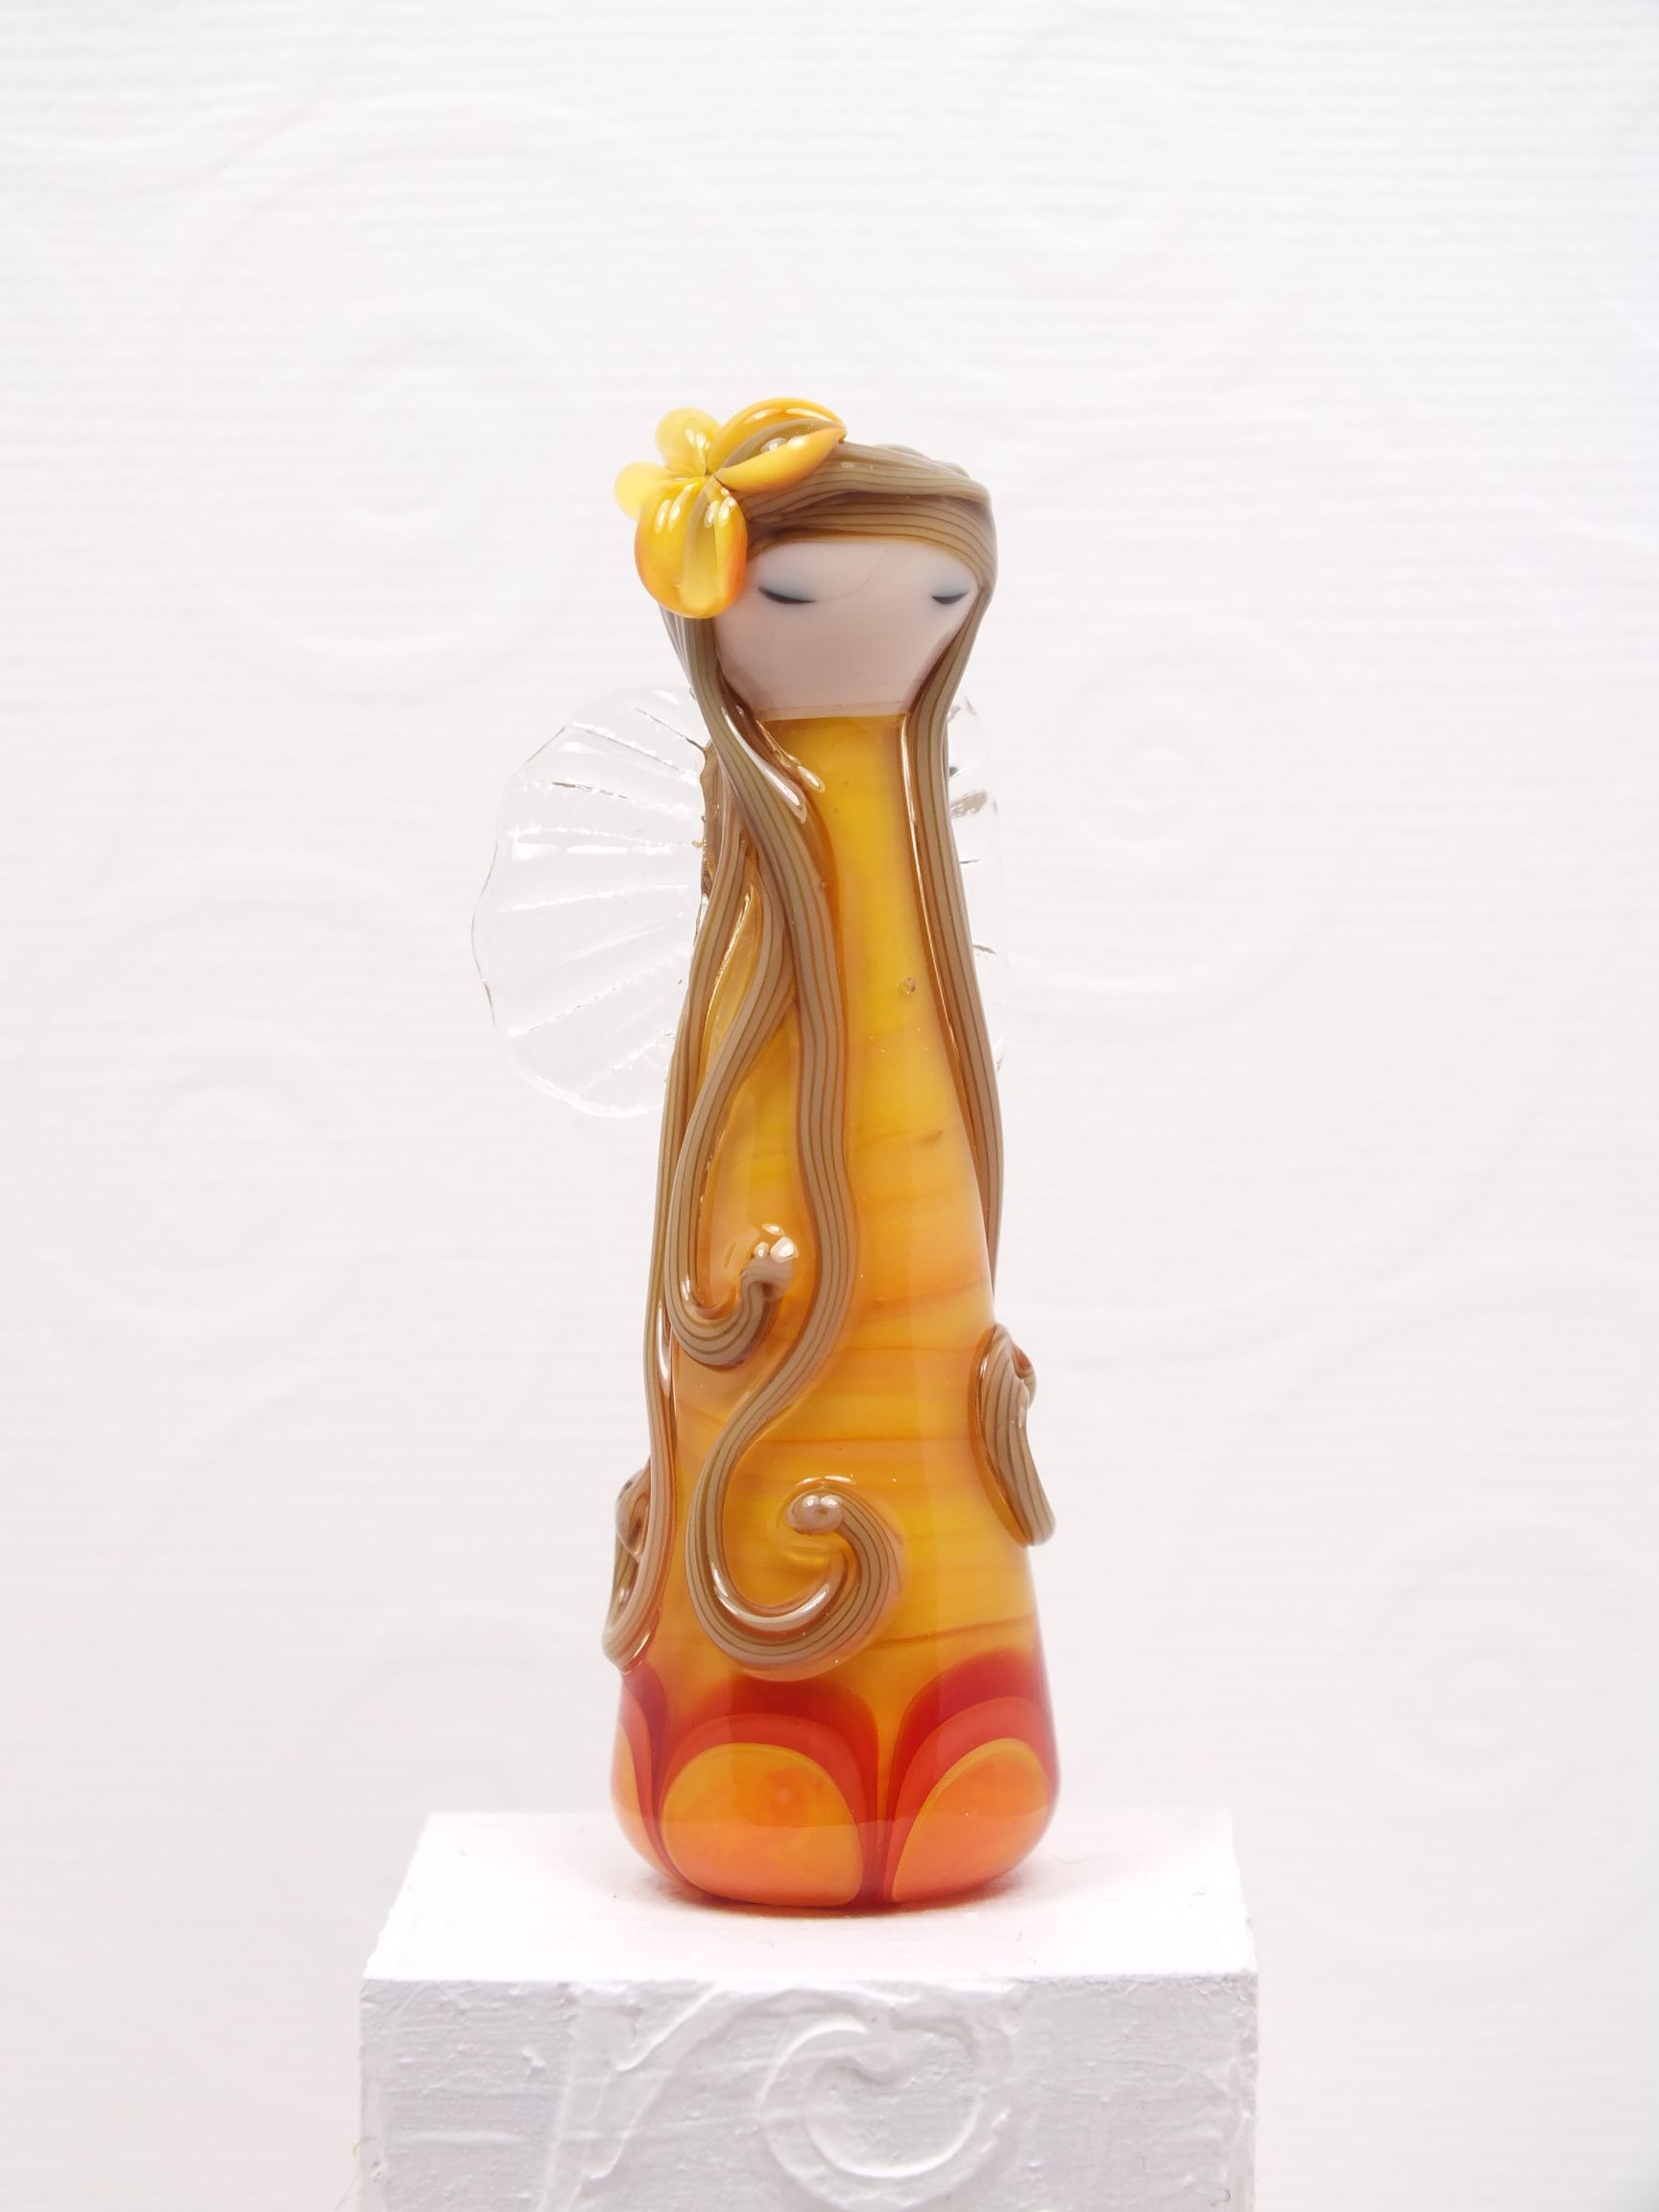 Sally Sutherland's beautiful woodland fairy - in Apricot Yellow